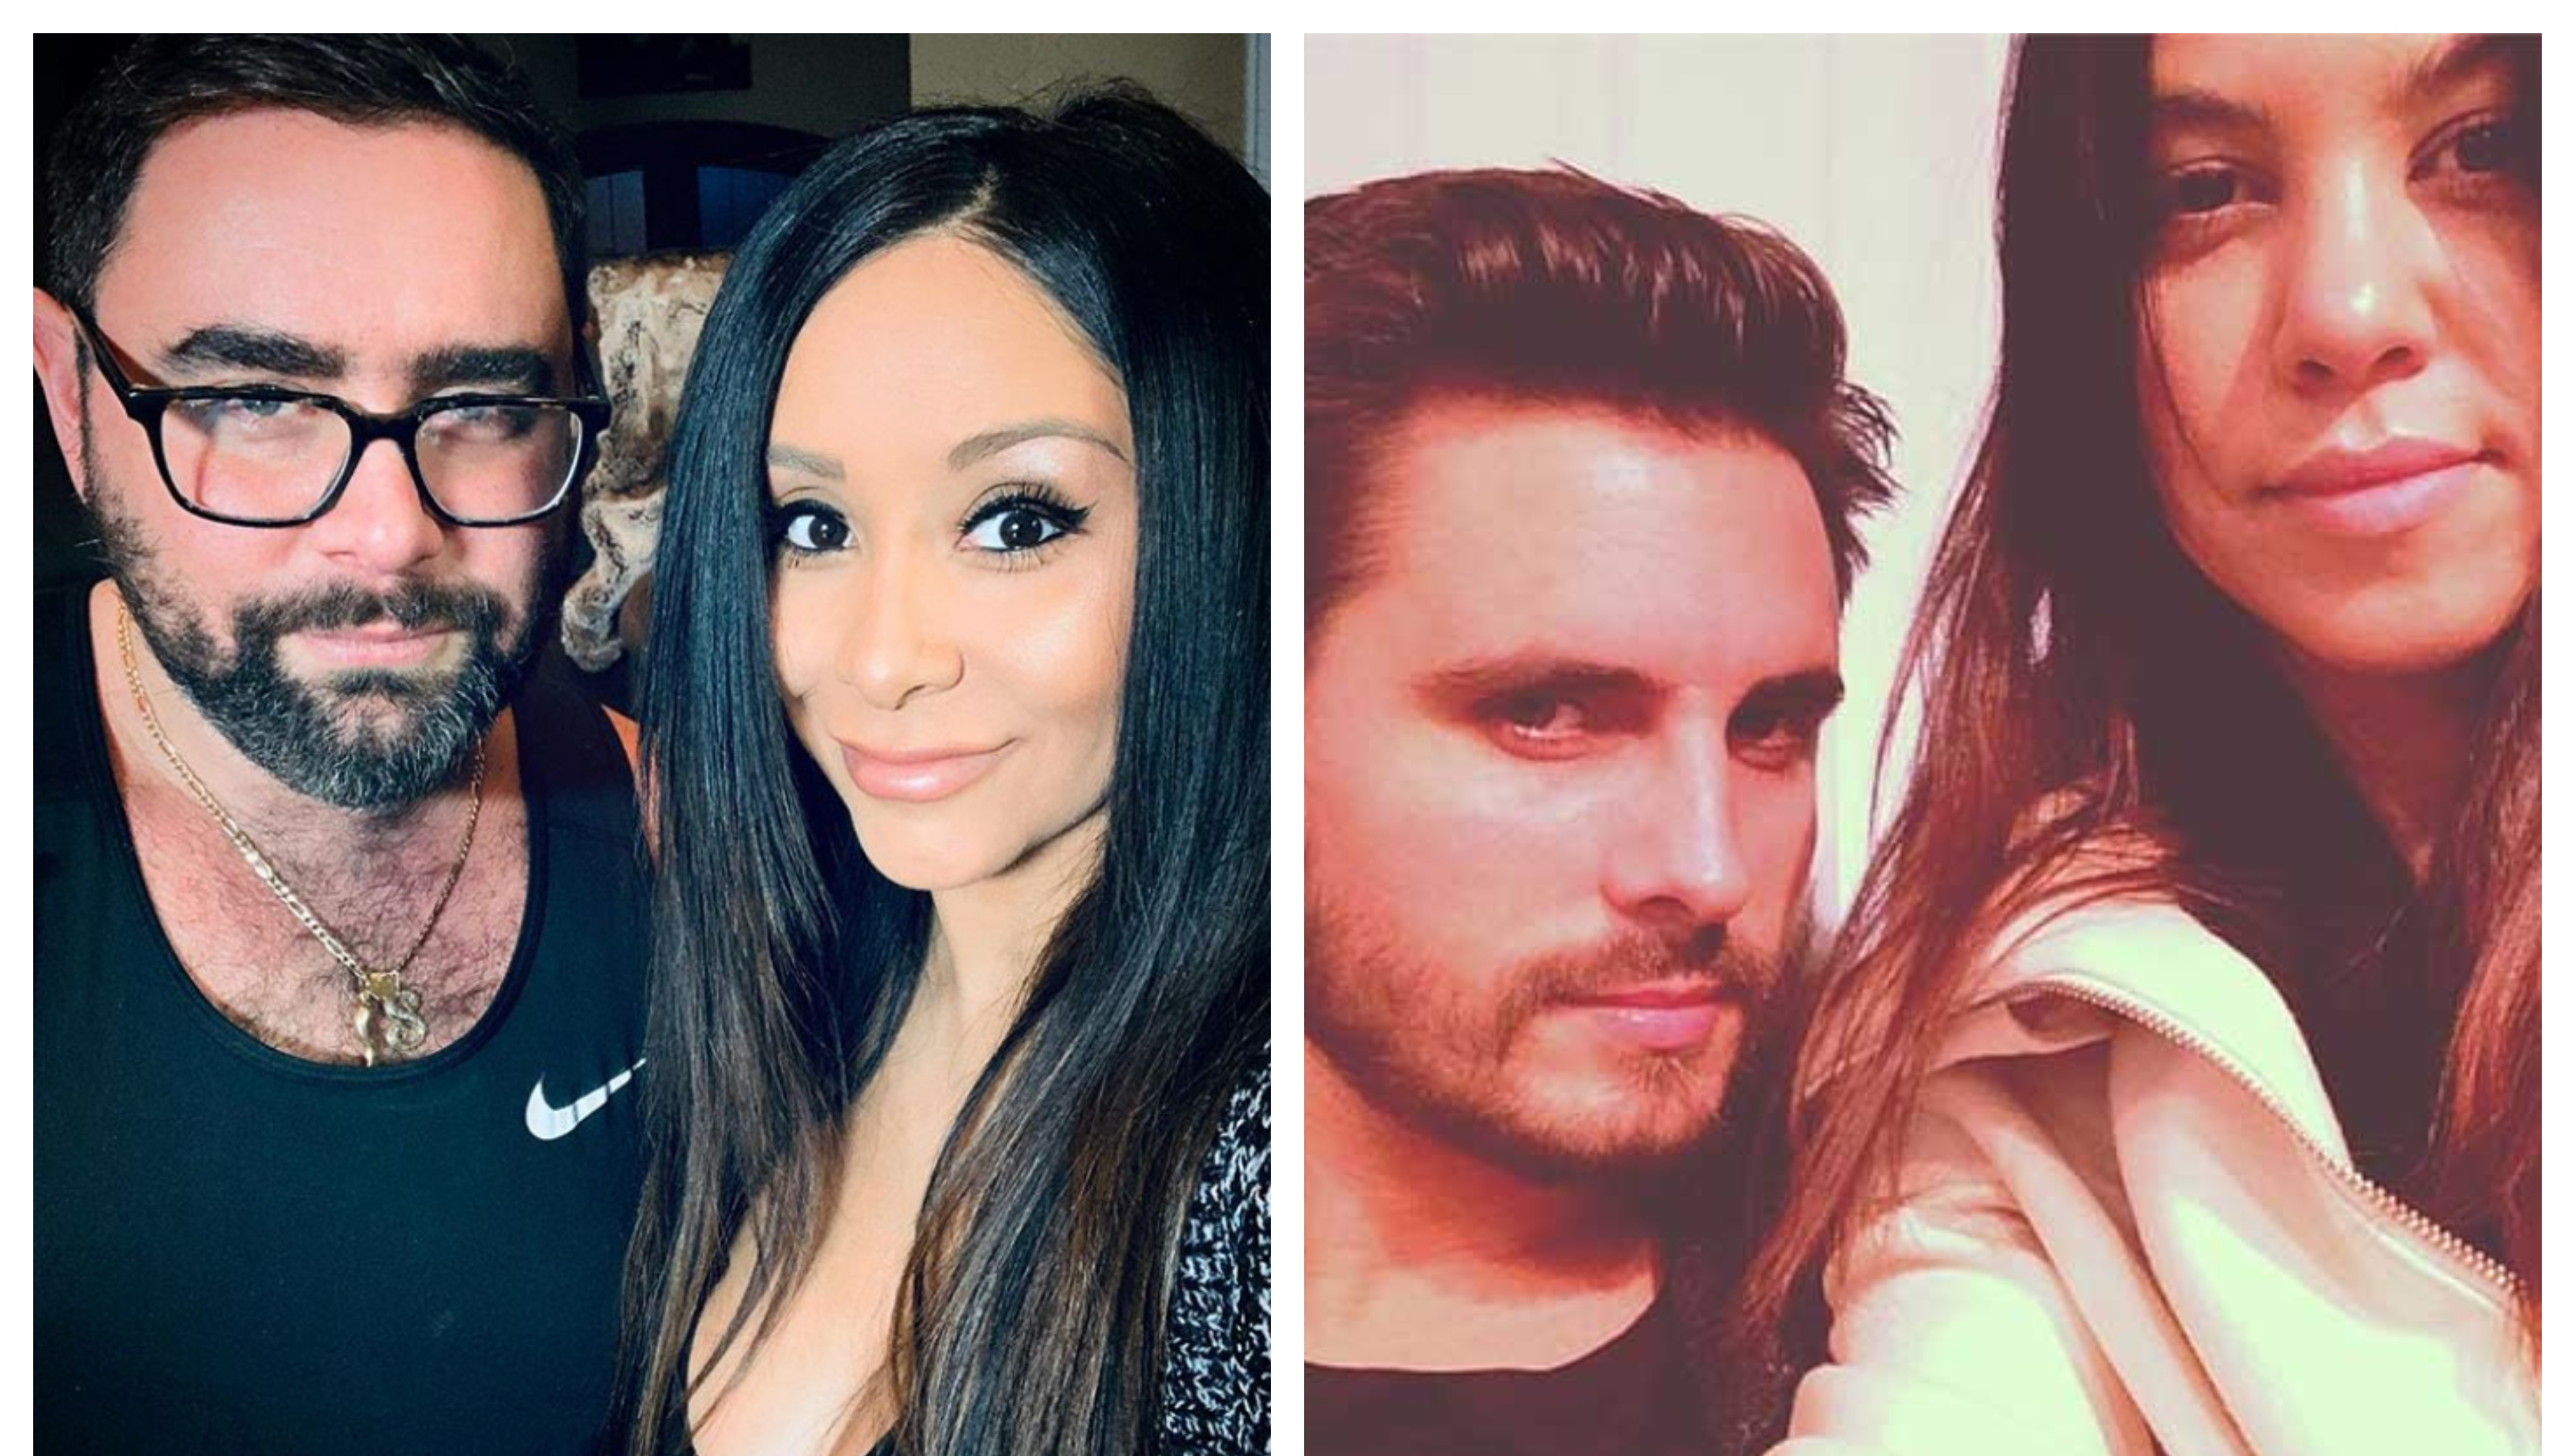 A split image of Snooki and Joey Camasta and Scott Disick and Kourtney Kardashian